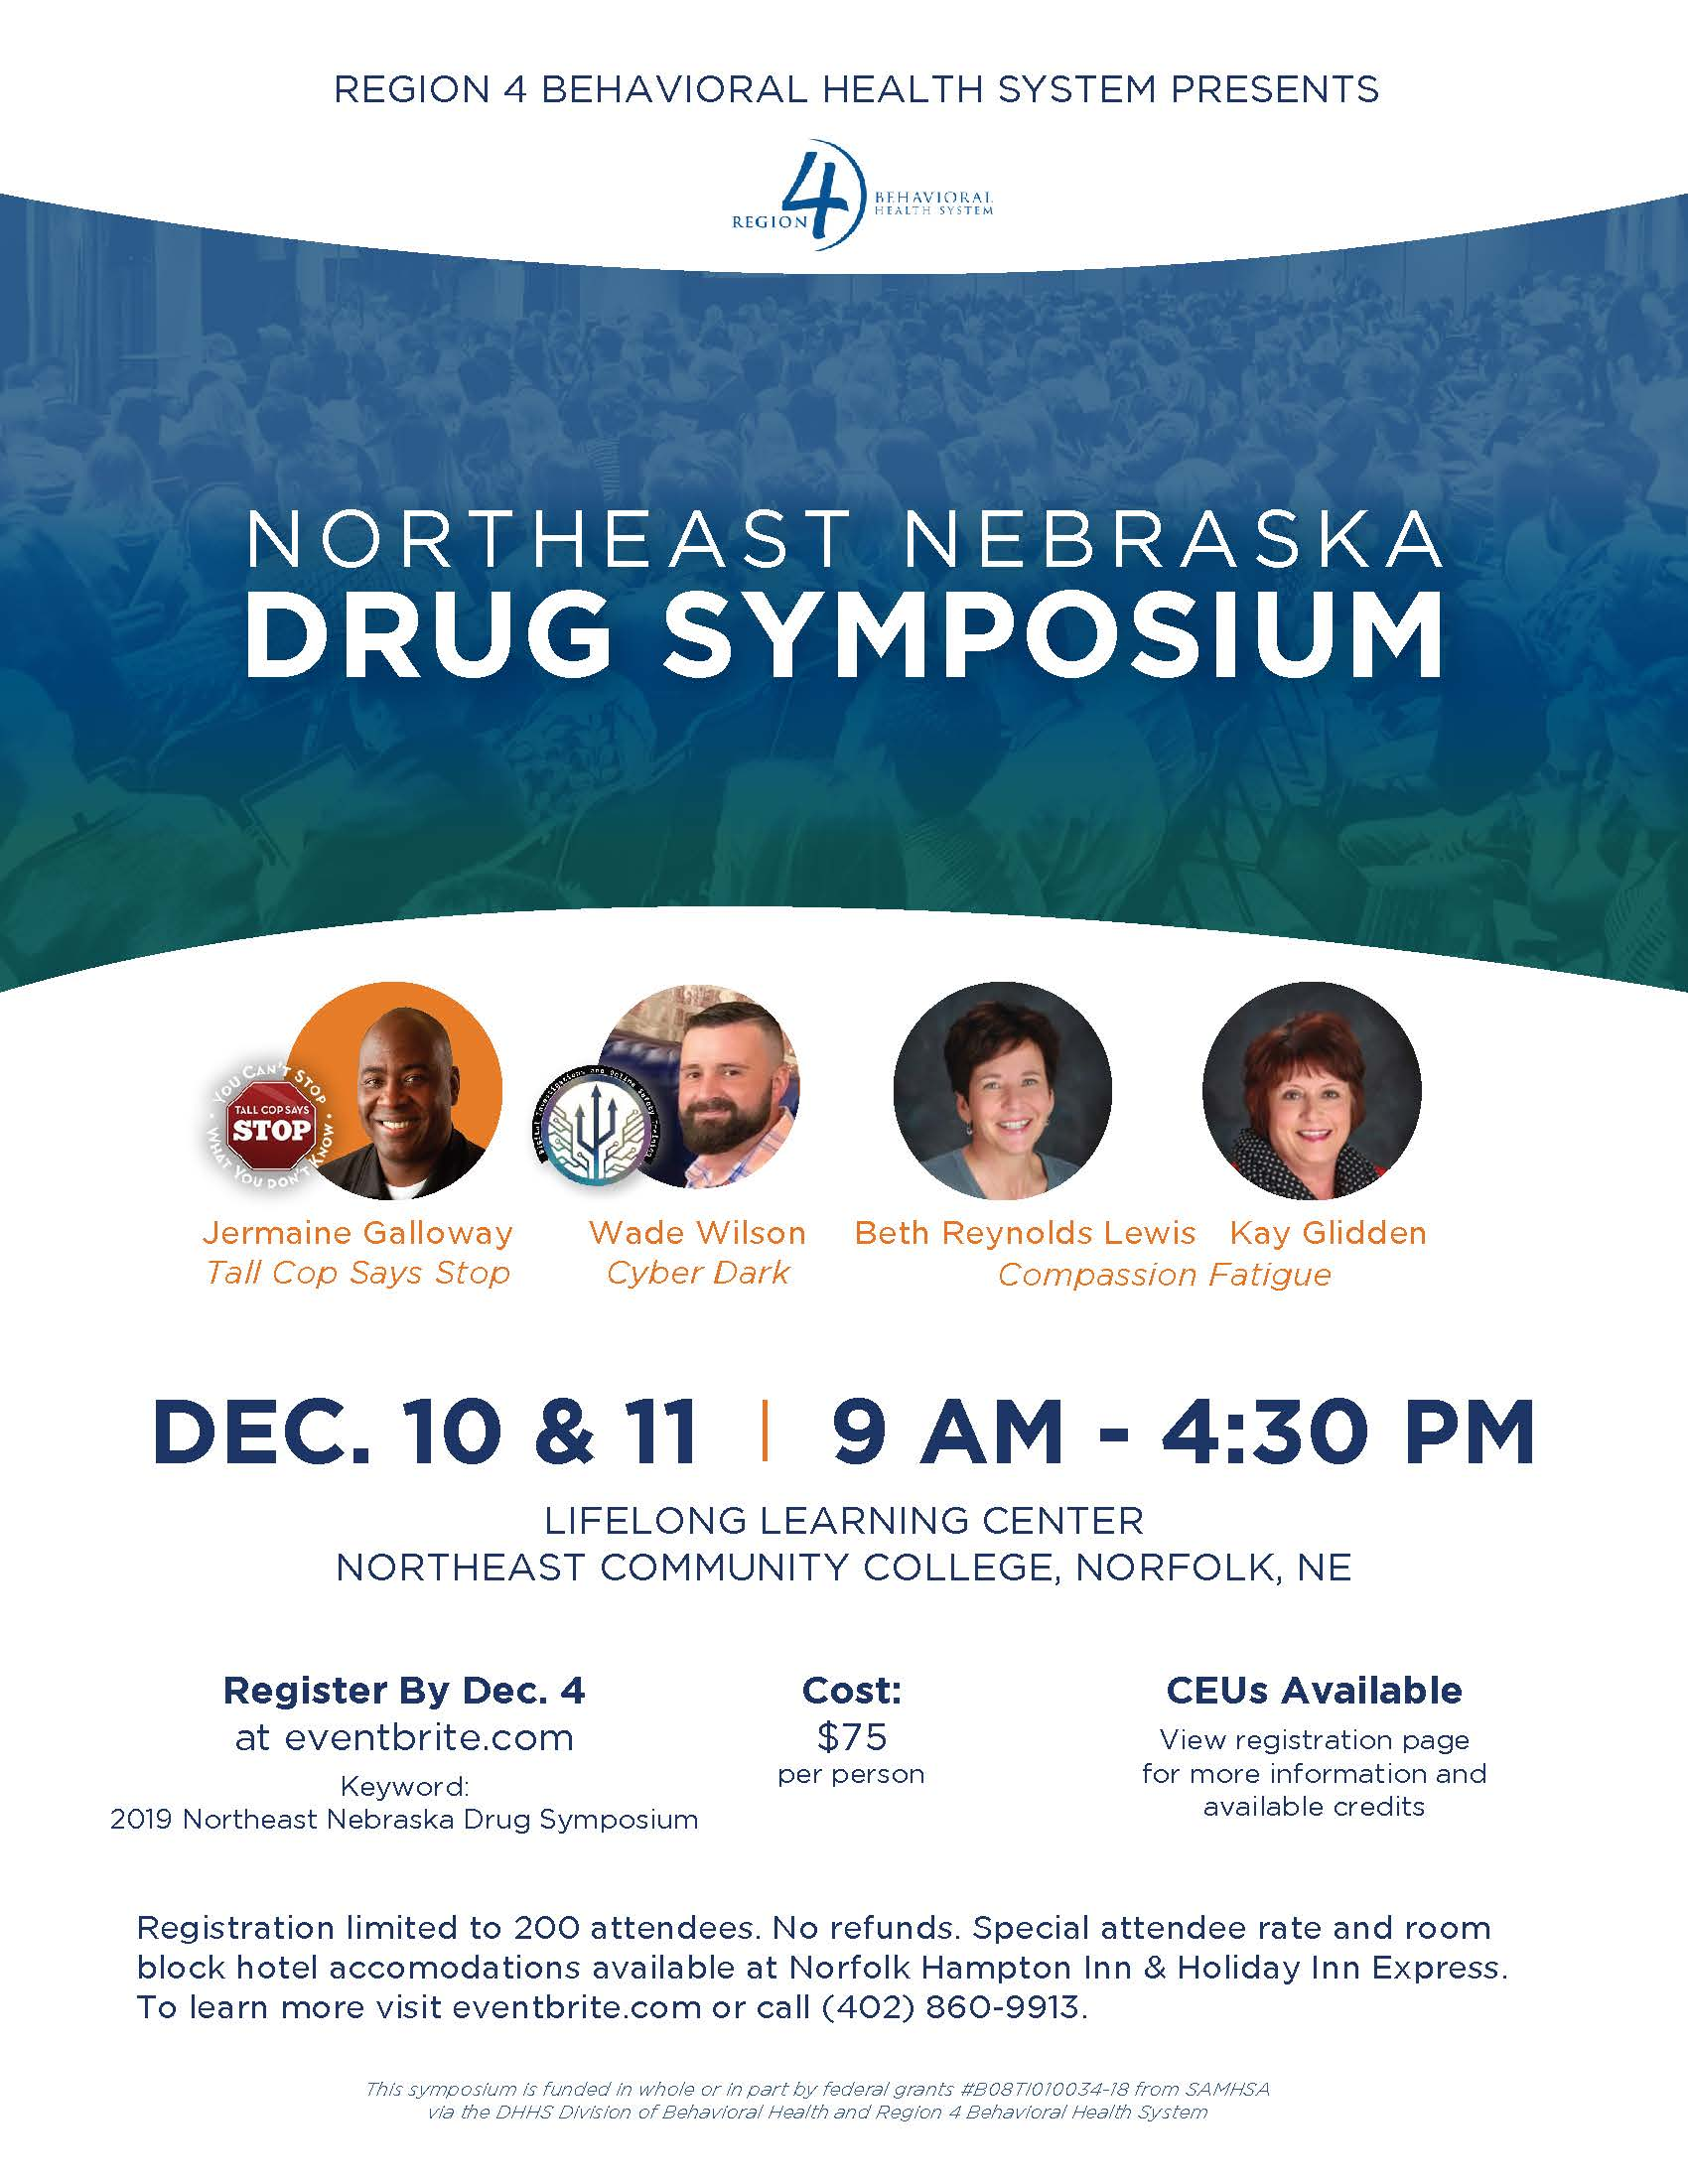 Northeast Nebraska Drug Symposium